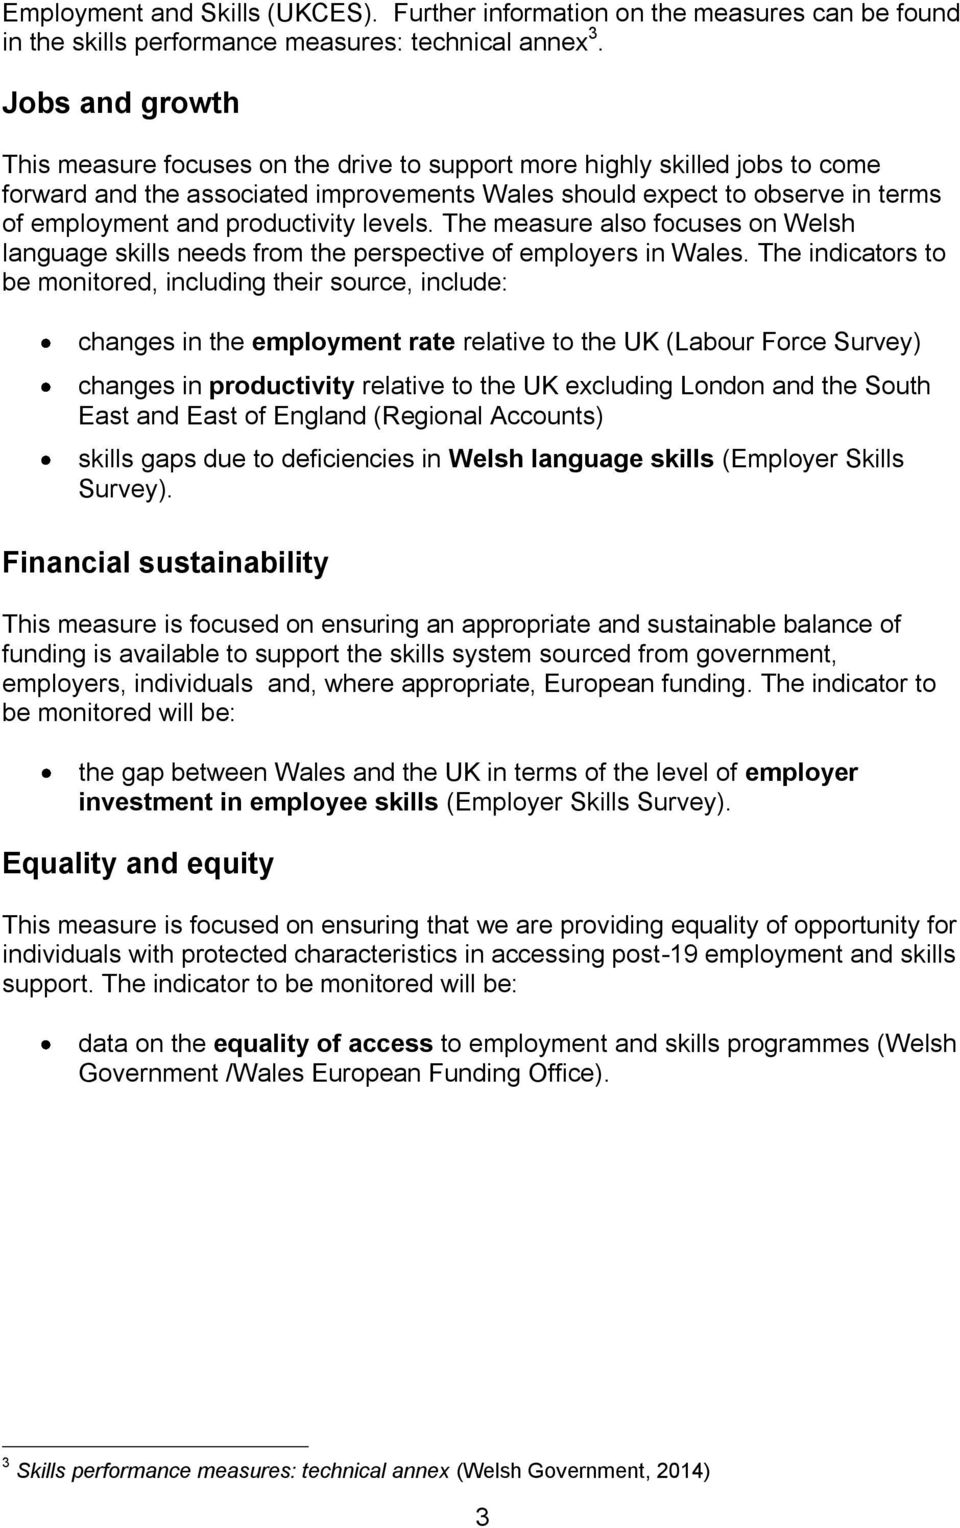 productivity levels. The measure also focuses on Welsh language skills needs from the perspective of employers in Wales.